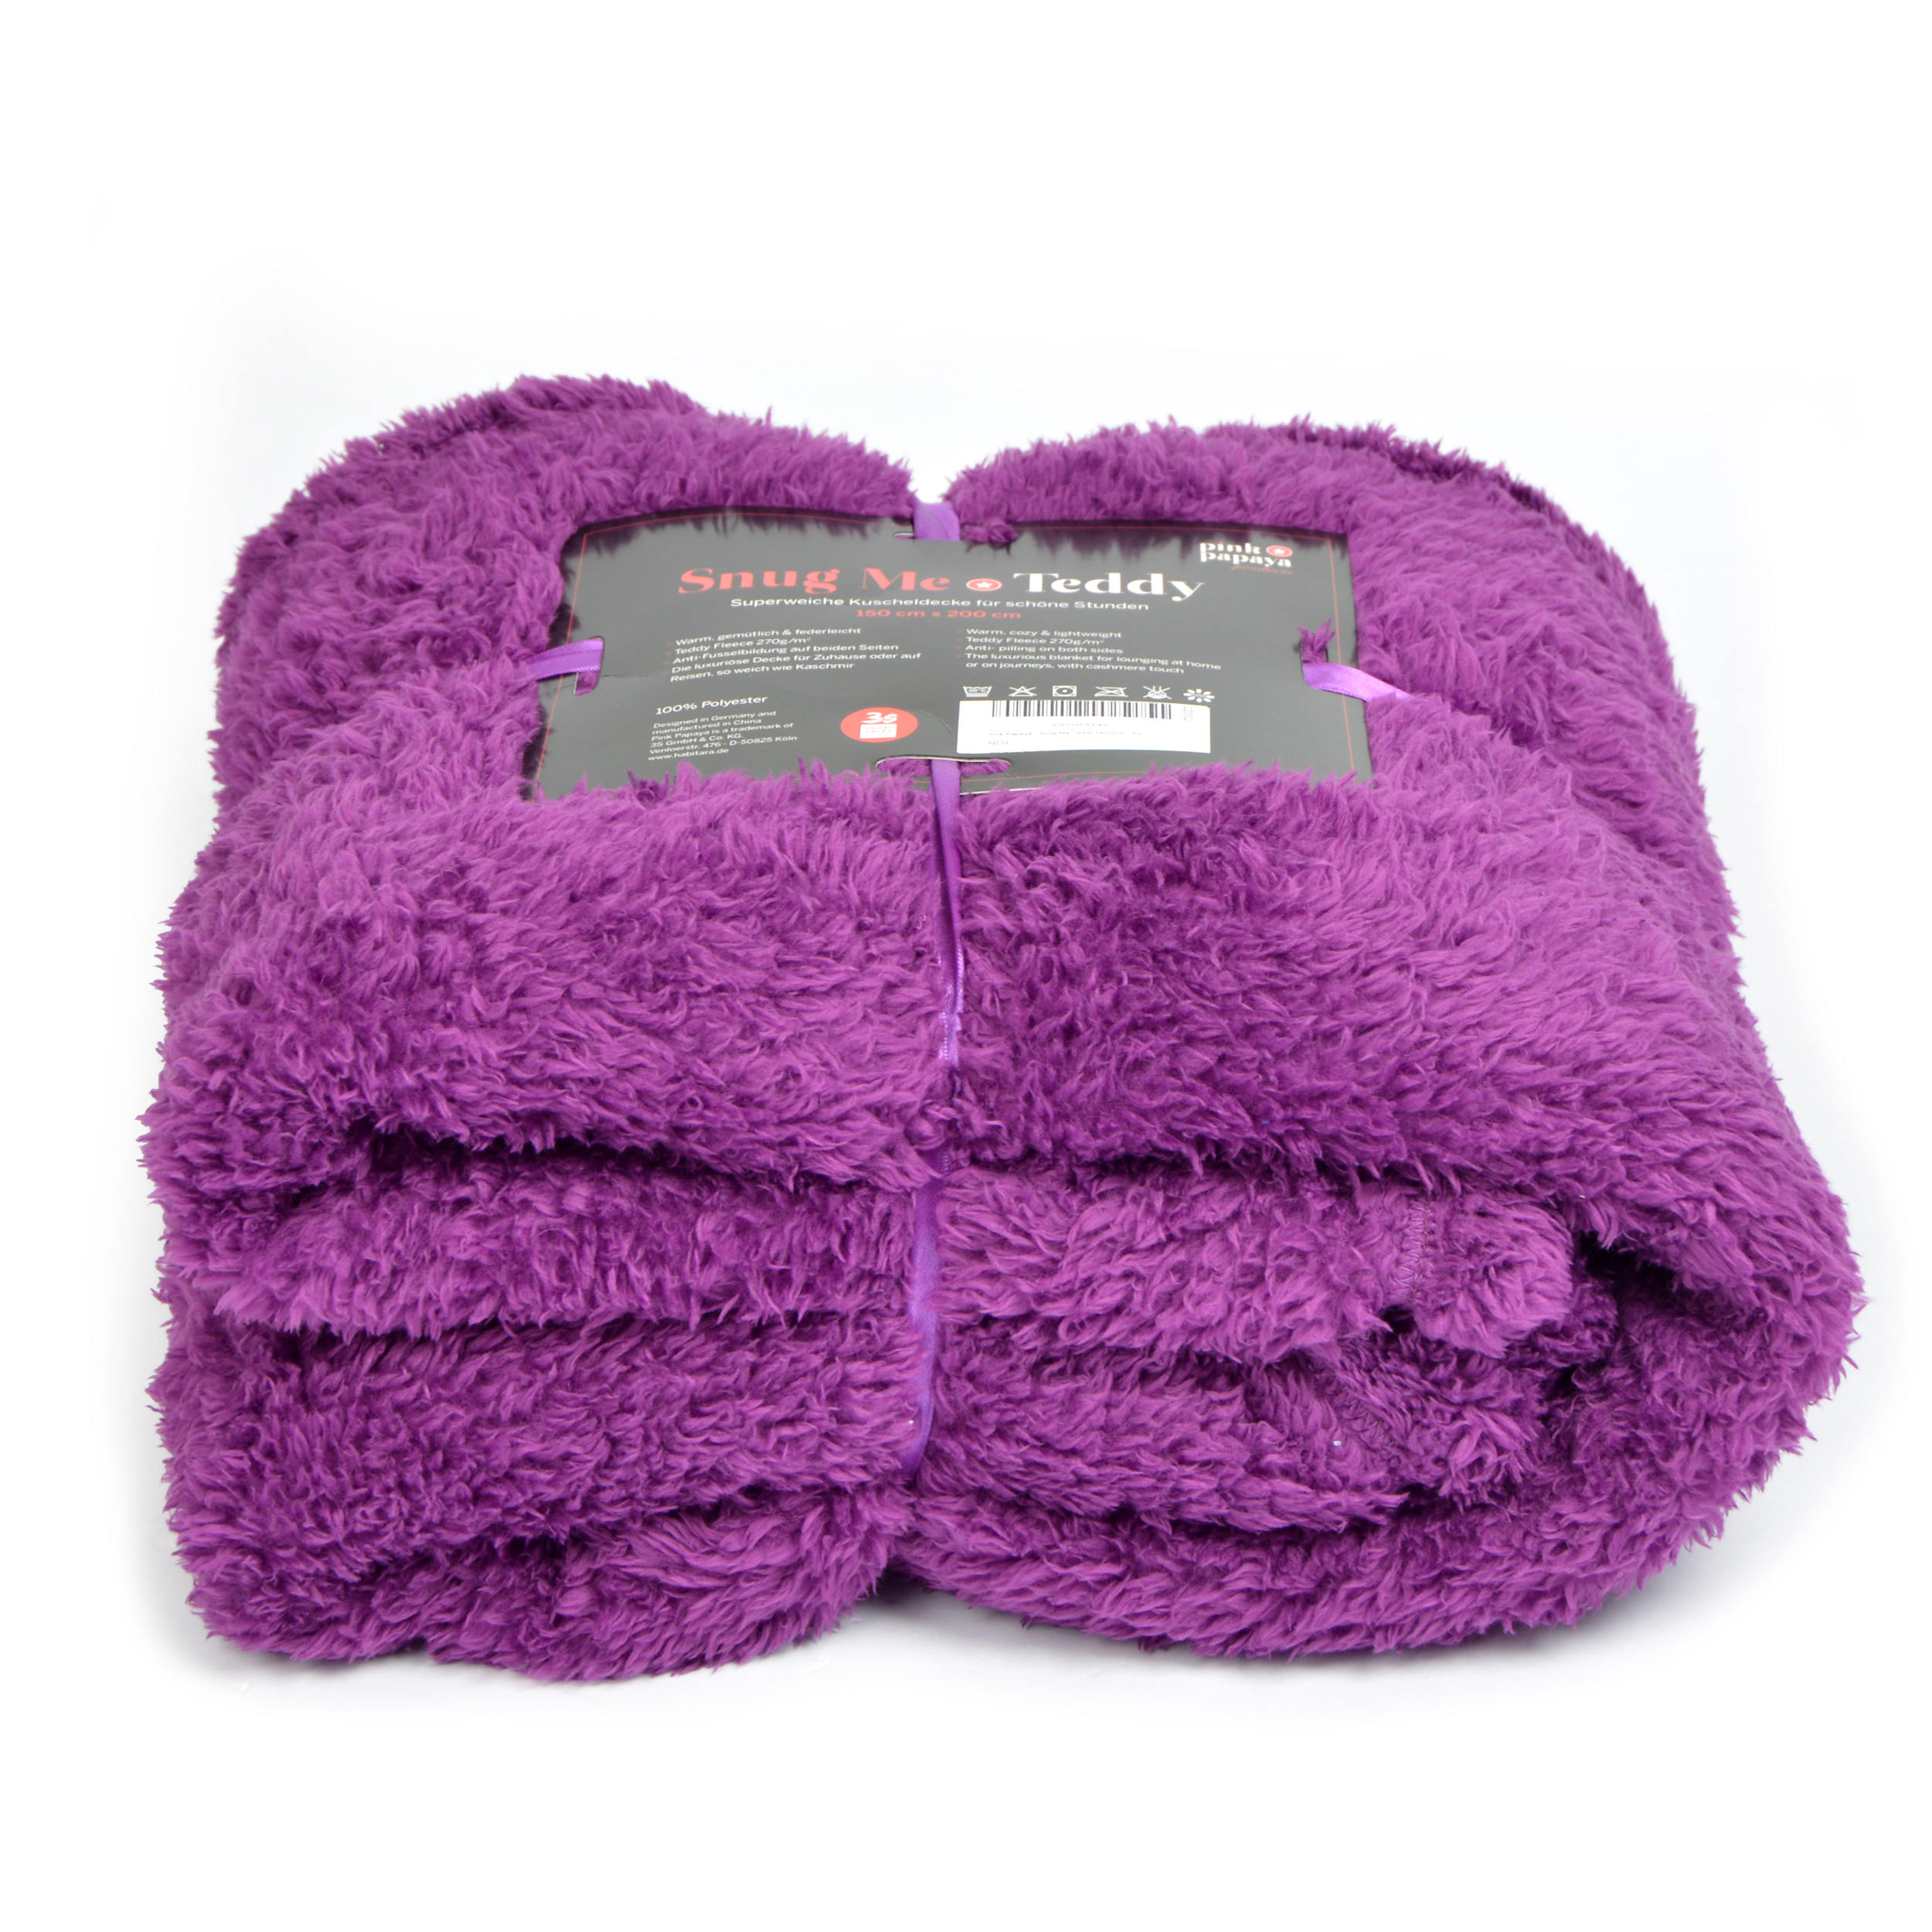 Snug Me Teddy Fleece Kuschel-Decke Lila